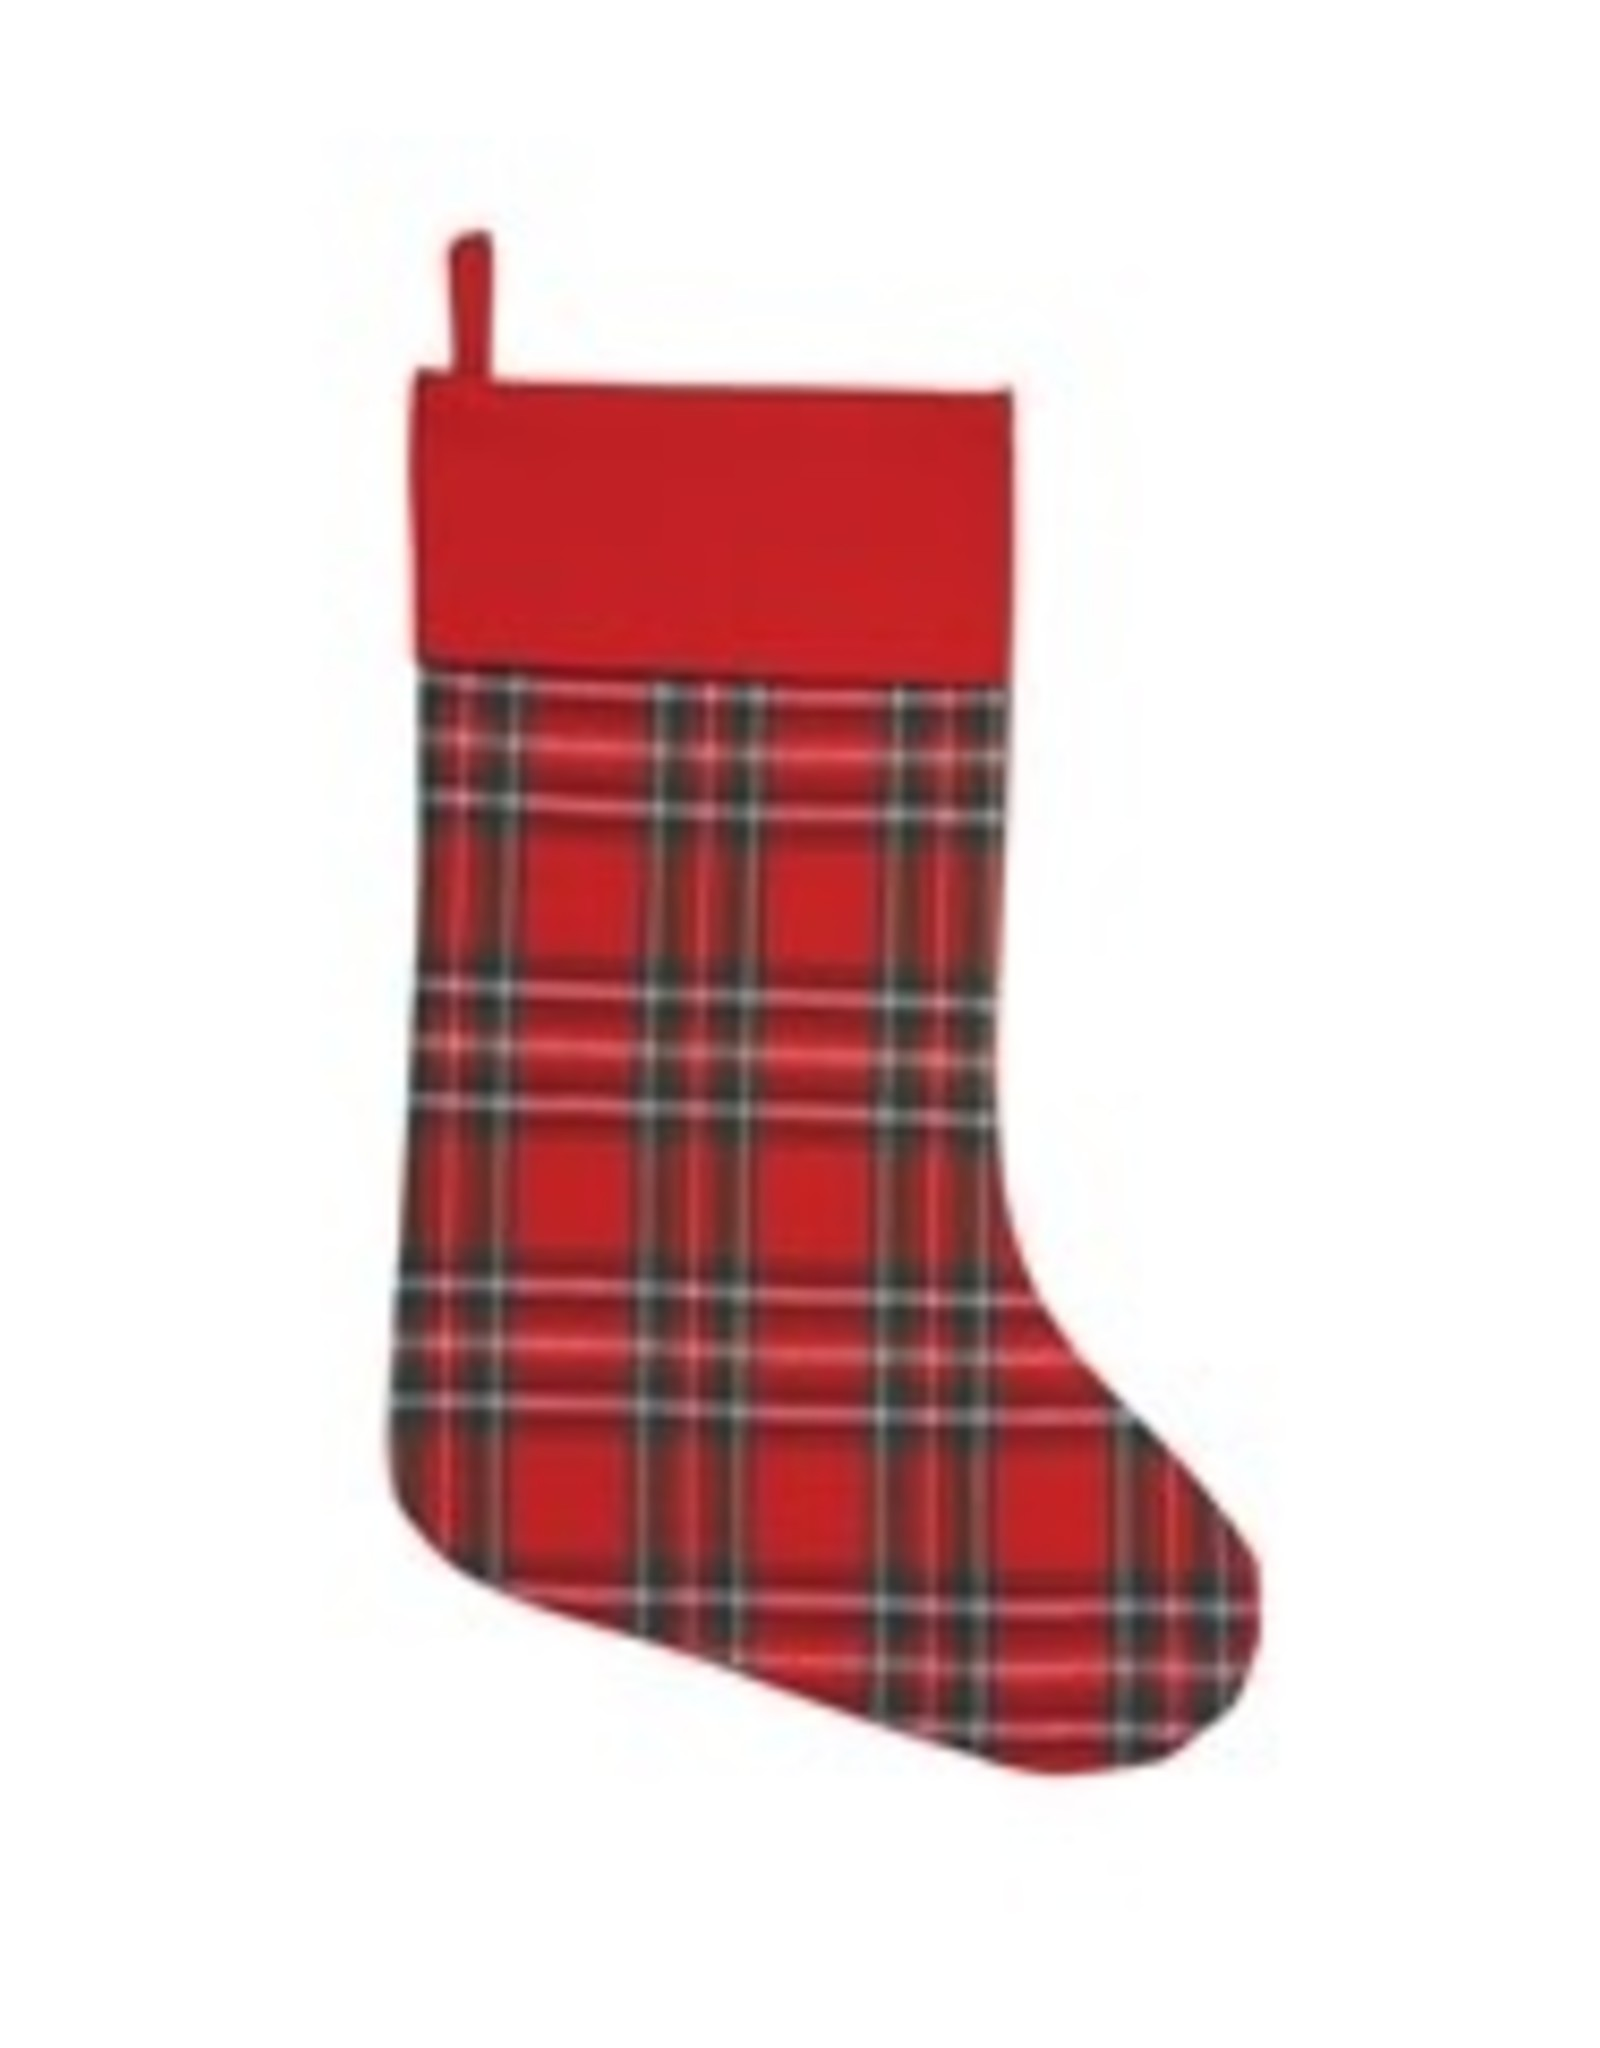 Arlington Plaid His Stocking